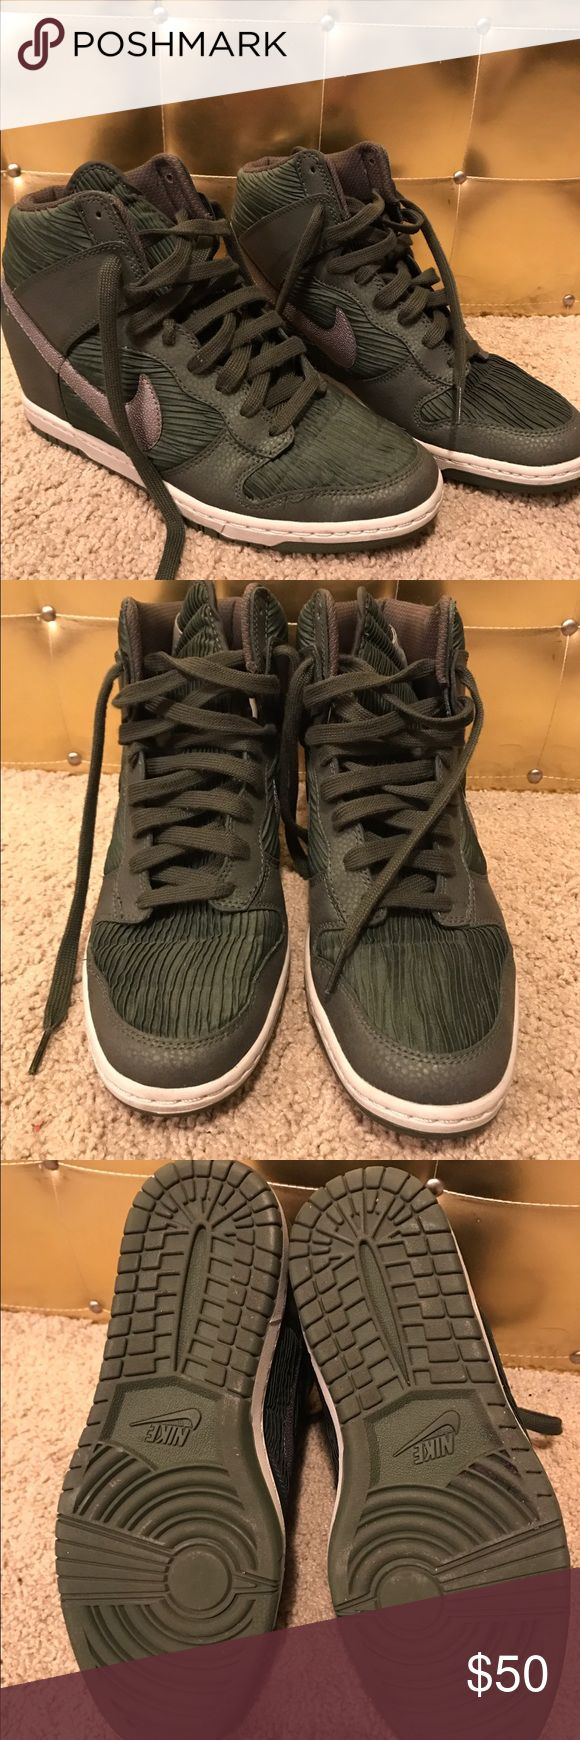 Forest Green Nike Sky Hi's.  Women's Size 10.5. Forest Green Nike Sky Hi's.  Women's Size 10.5. Excellent used condition. Nike Shoes Athletic Shoes